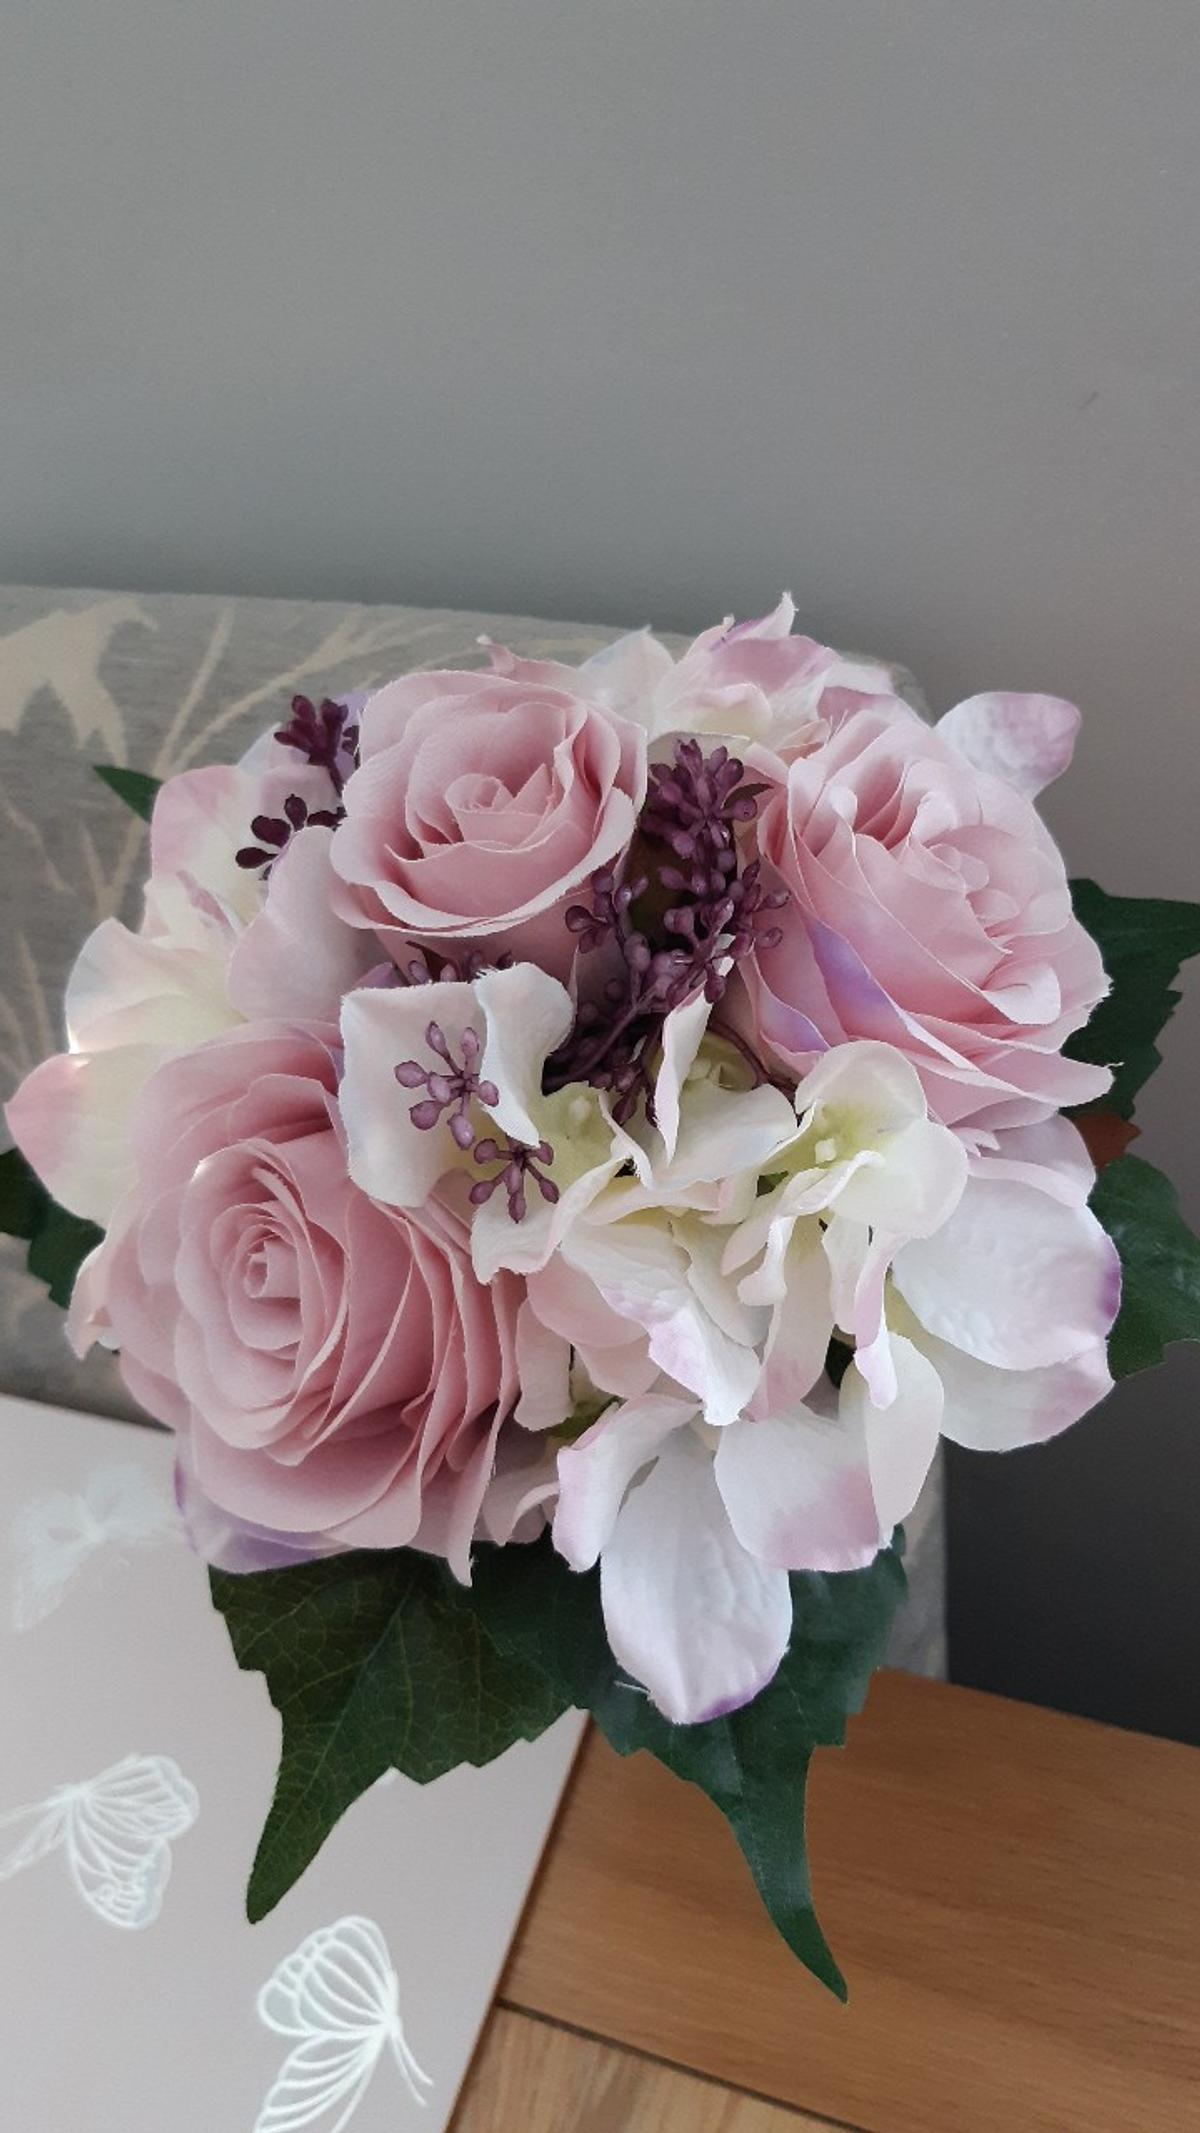 Laura Ashley Artificial Flowers In Se9 Bromley For 7 00 For Sale Shpock